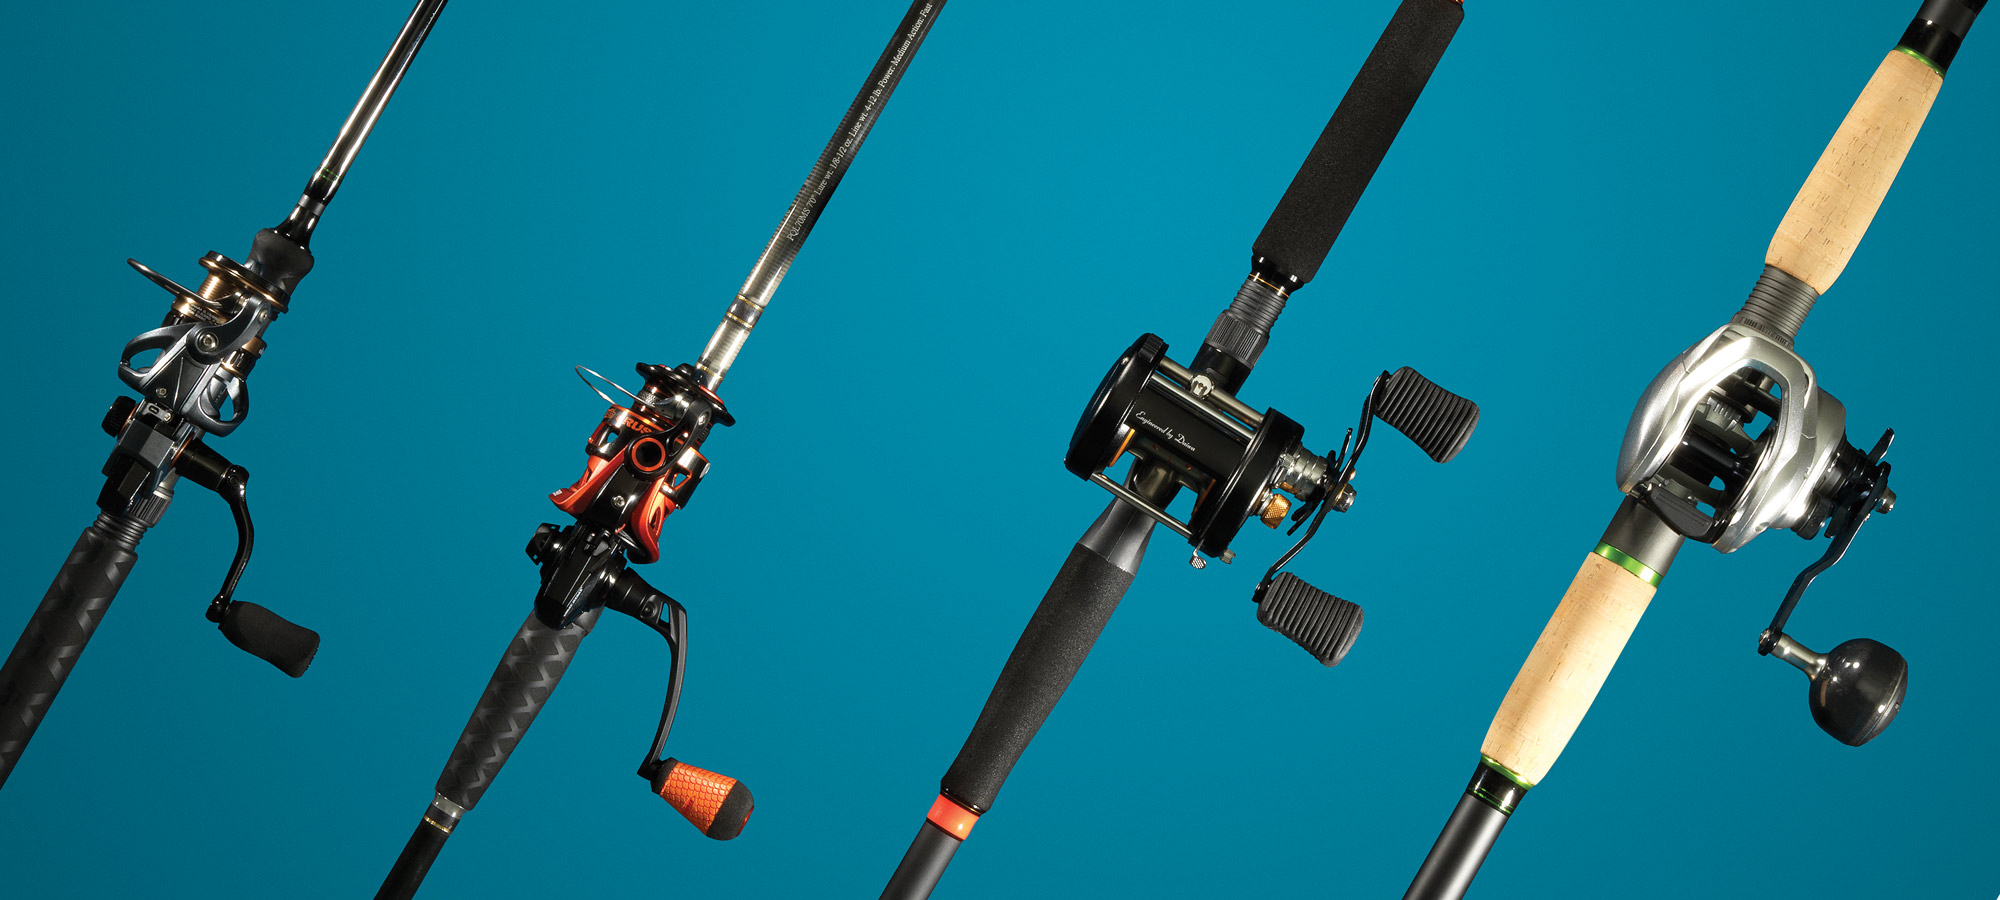 Gear Test: Top Fishing Rods and Reels 2018 | Outdoor Life